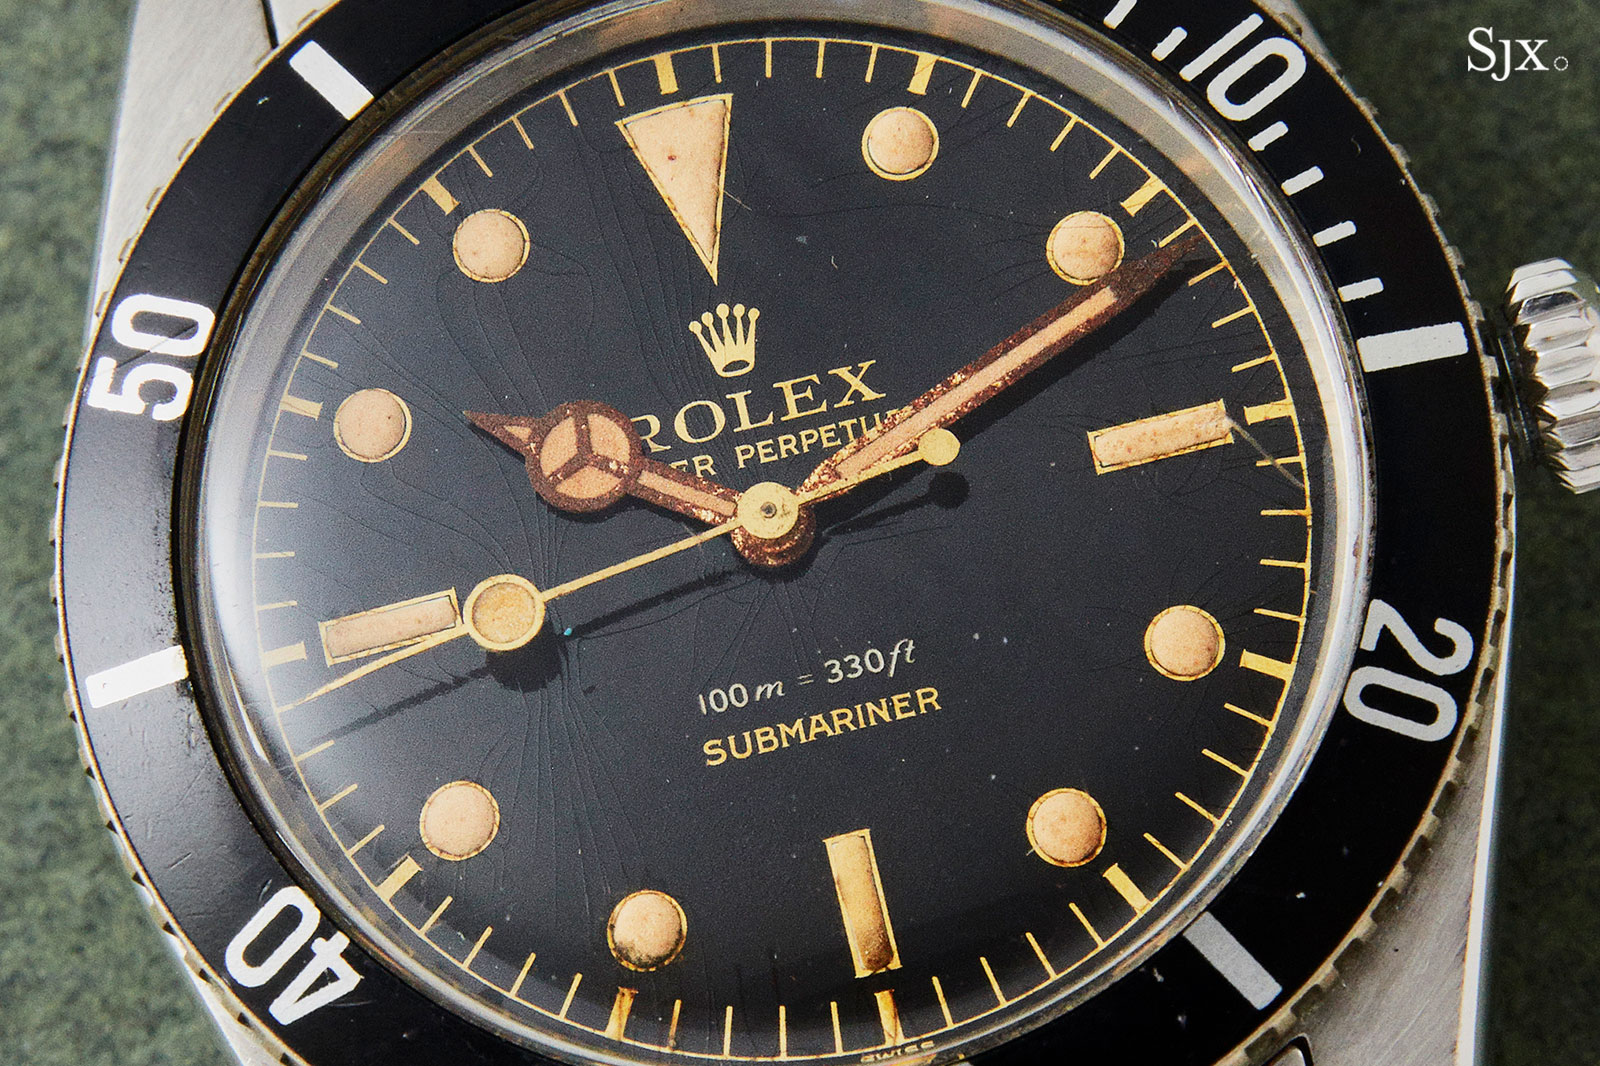 Rolex Submariner 6536 small crown james bond 1